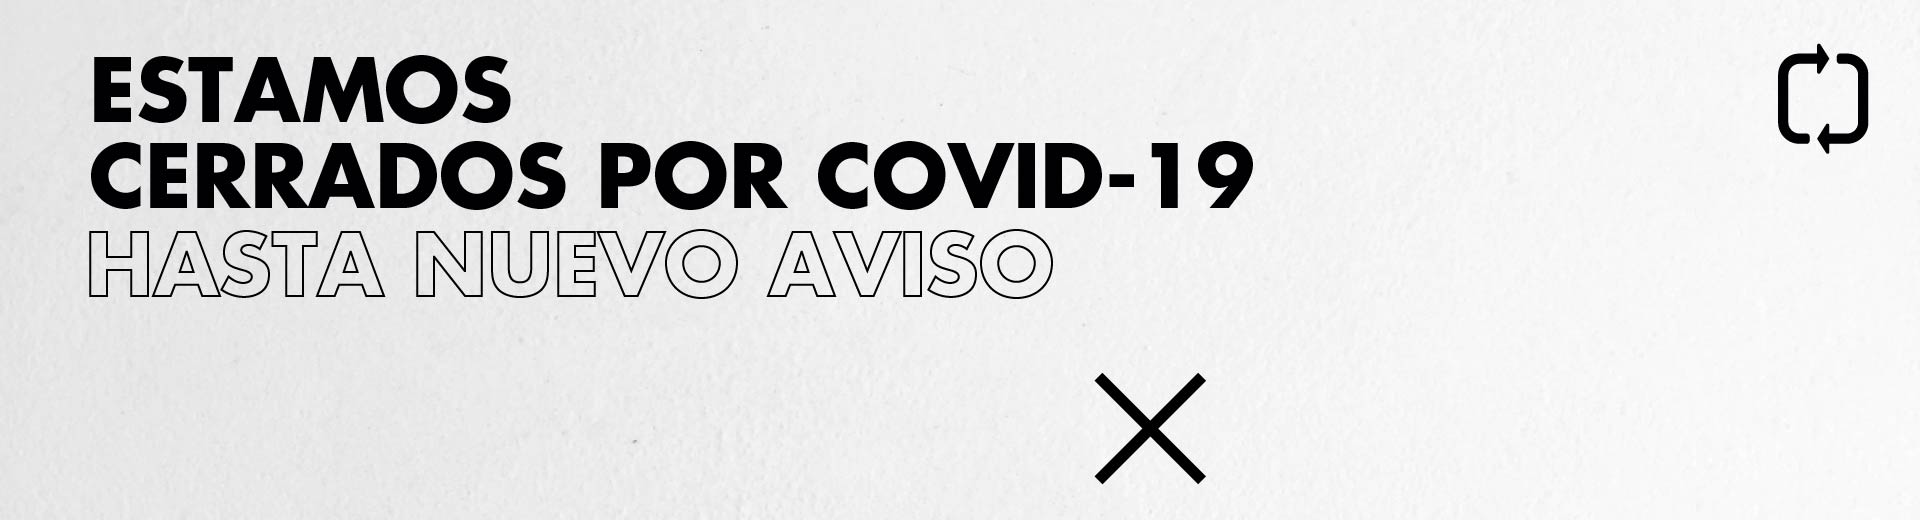 COVID19_2019_LaONG-02-1